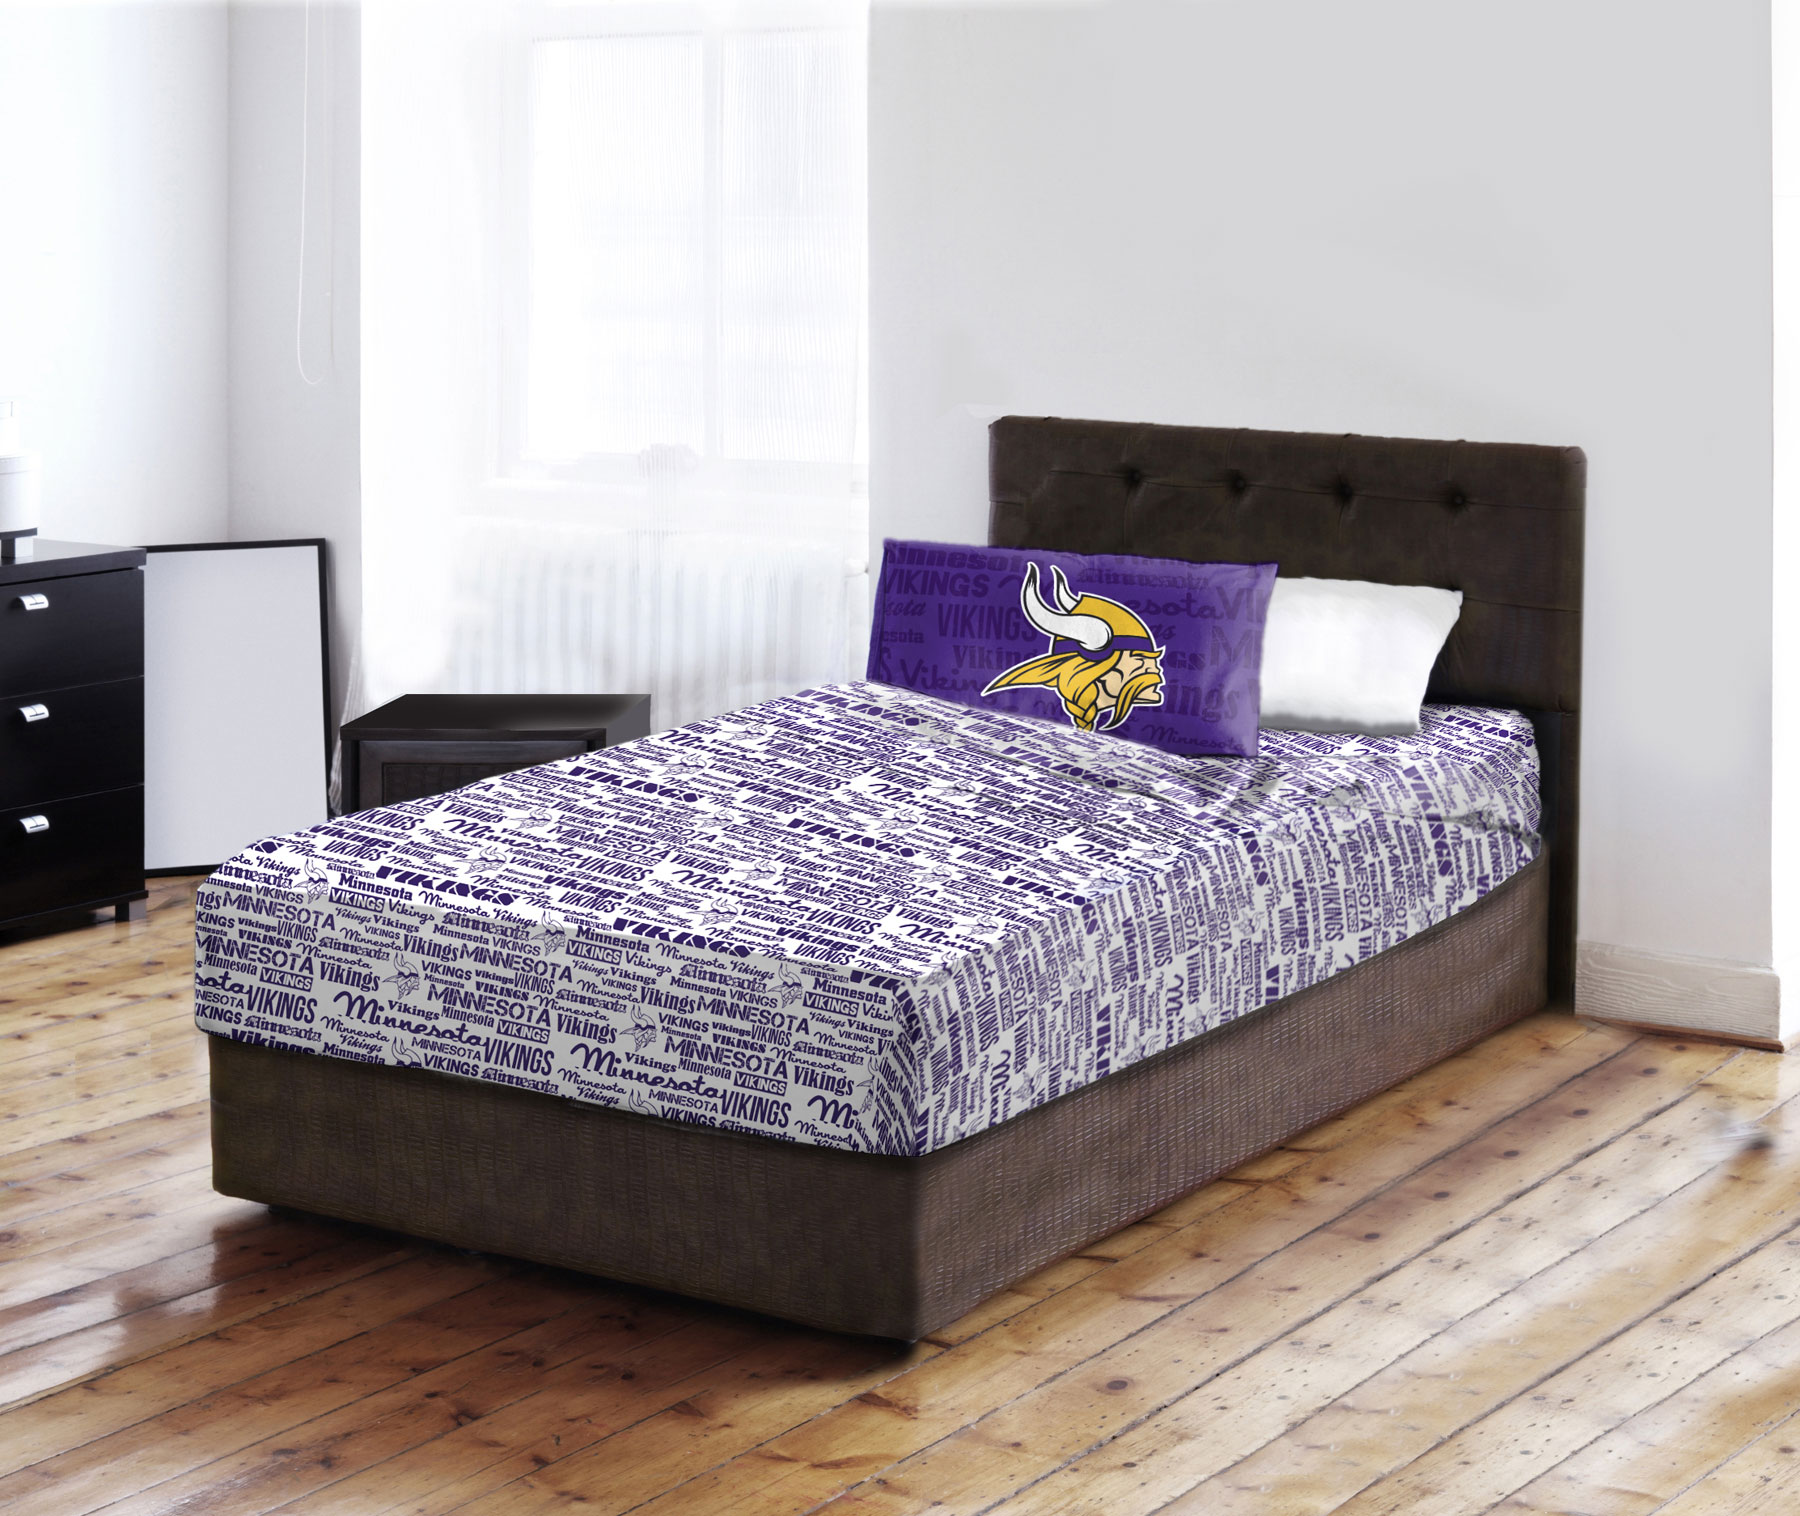 Nfl Minnesota Vikings Anthem Bed Sheets And Pillowcase Set